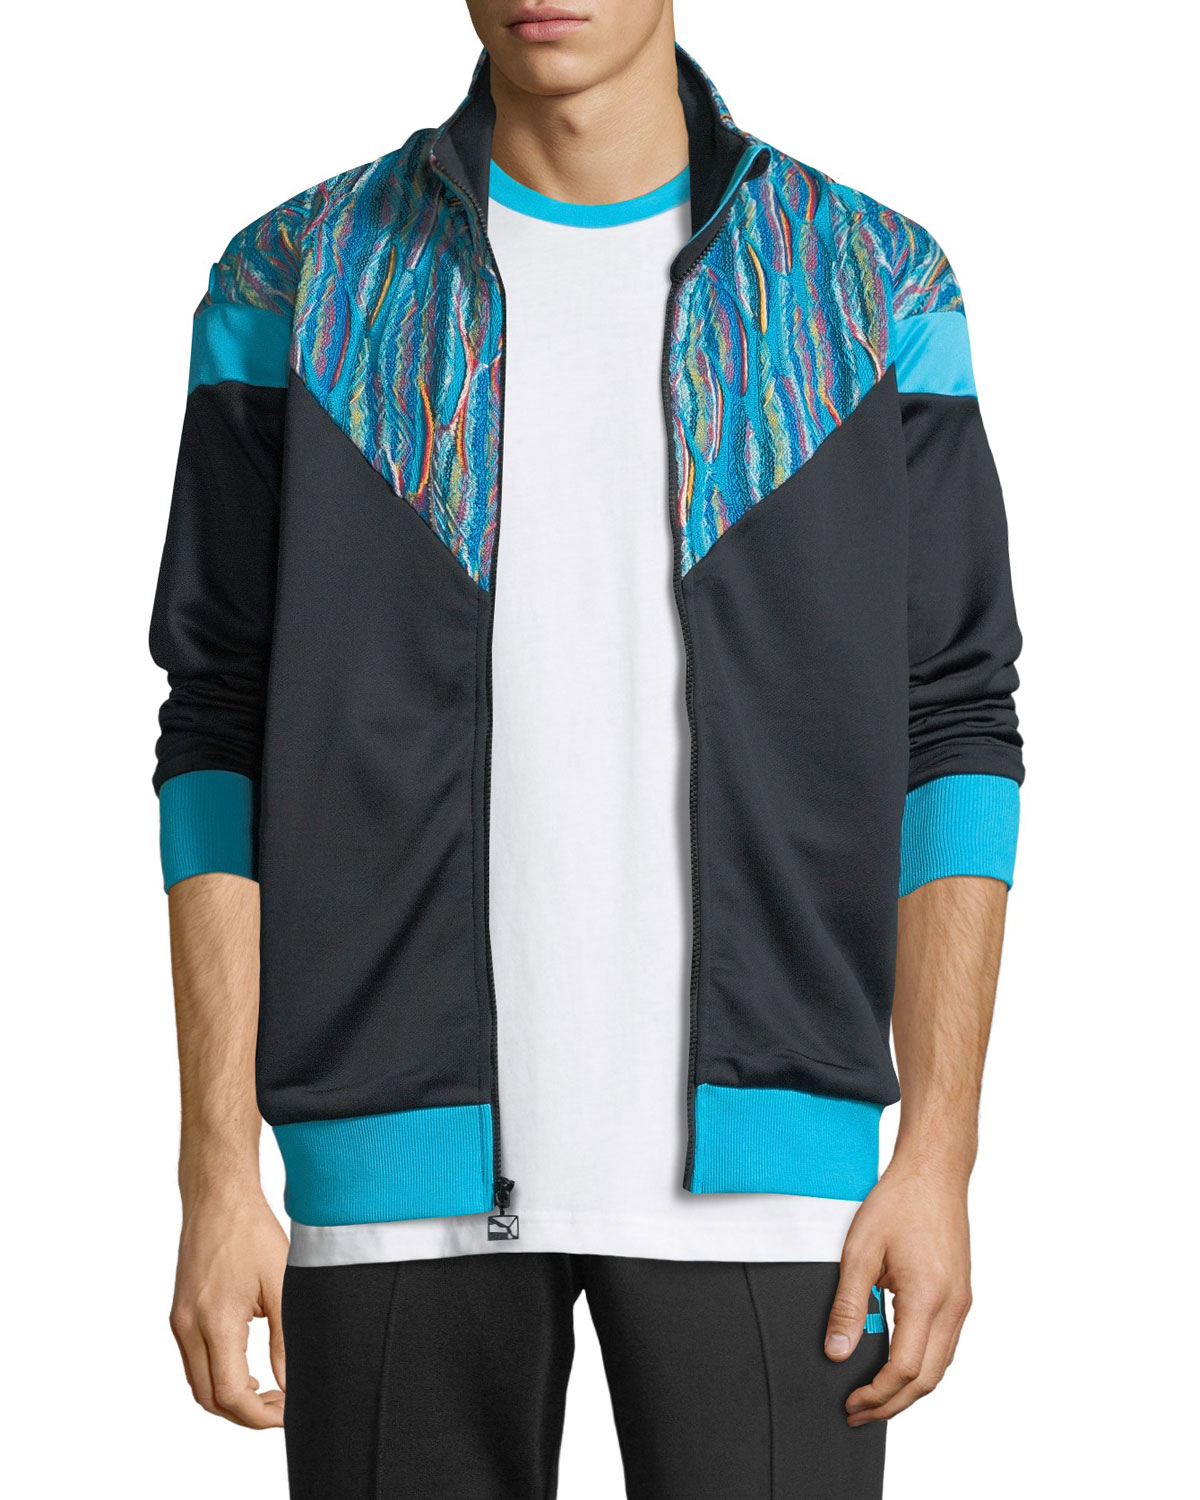 Men\'s x COOGI Track Jacket